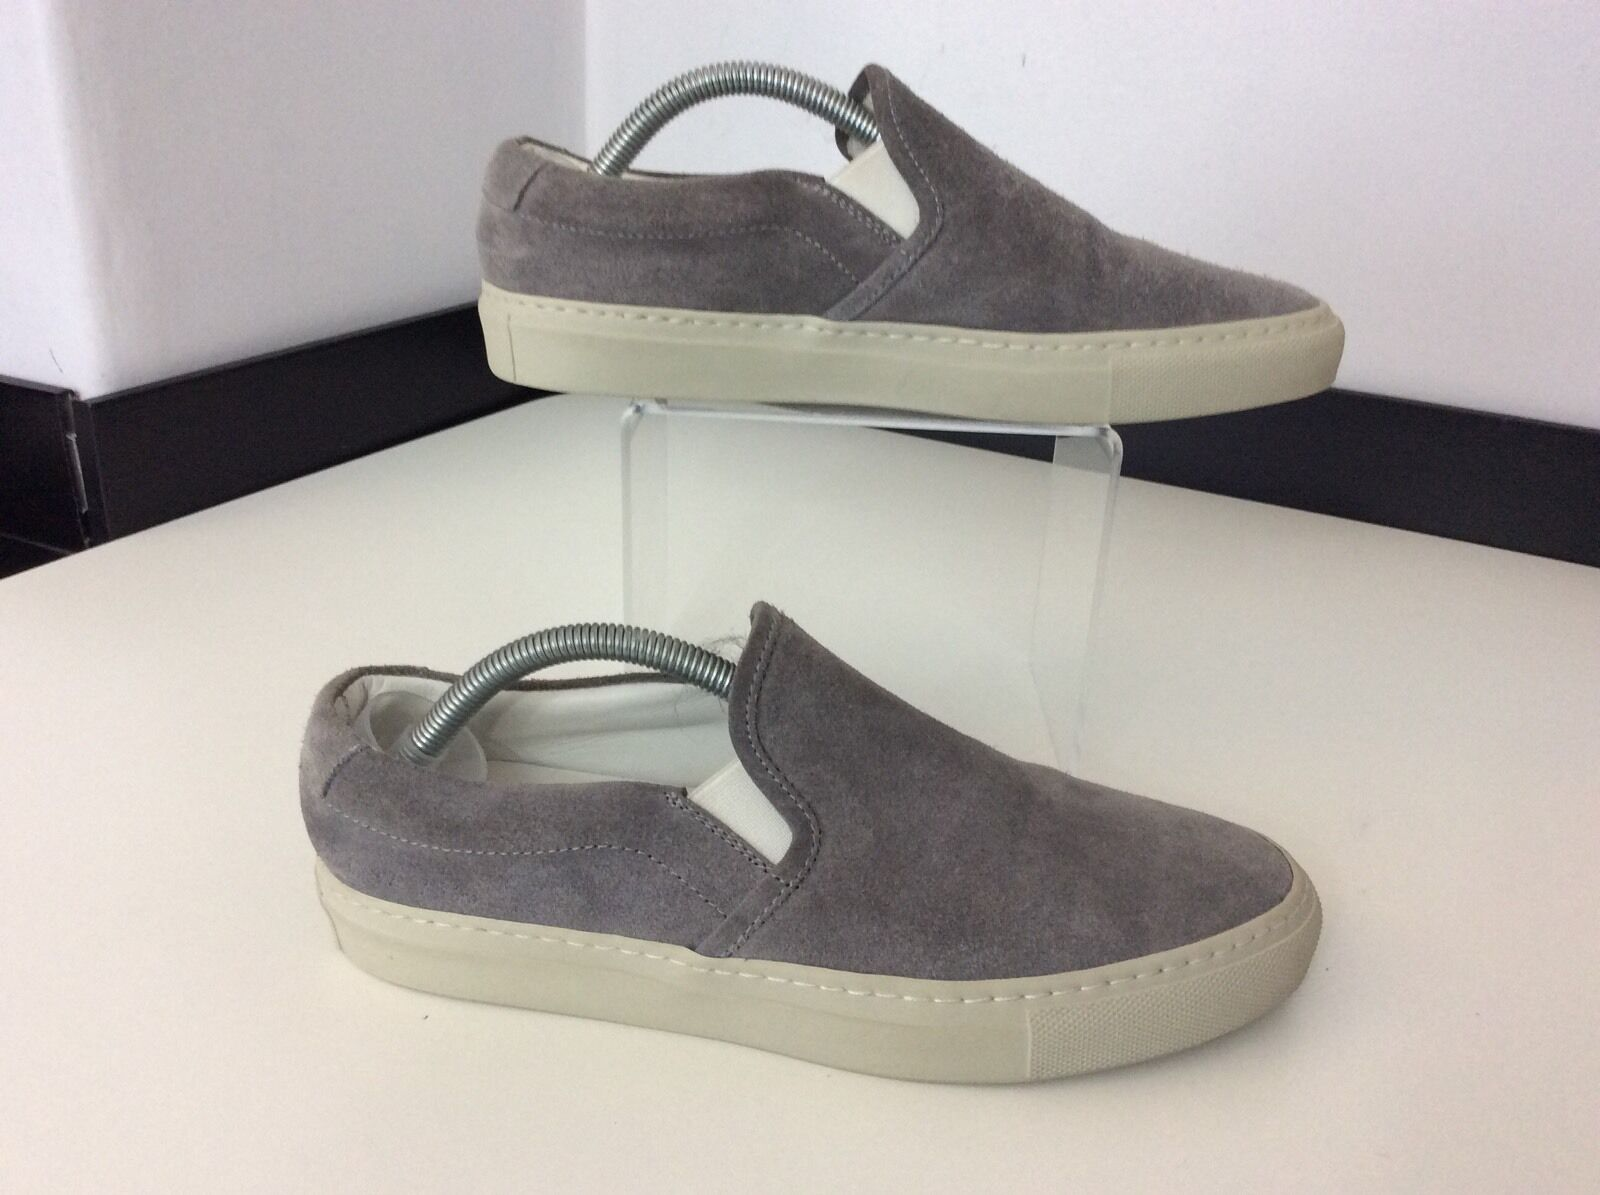 Woman Suede By Common Projects New Grau Suede Woman Loafers Schuhes Slip On Bnwob Größe 39 Uk 6 185424